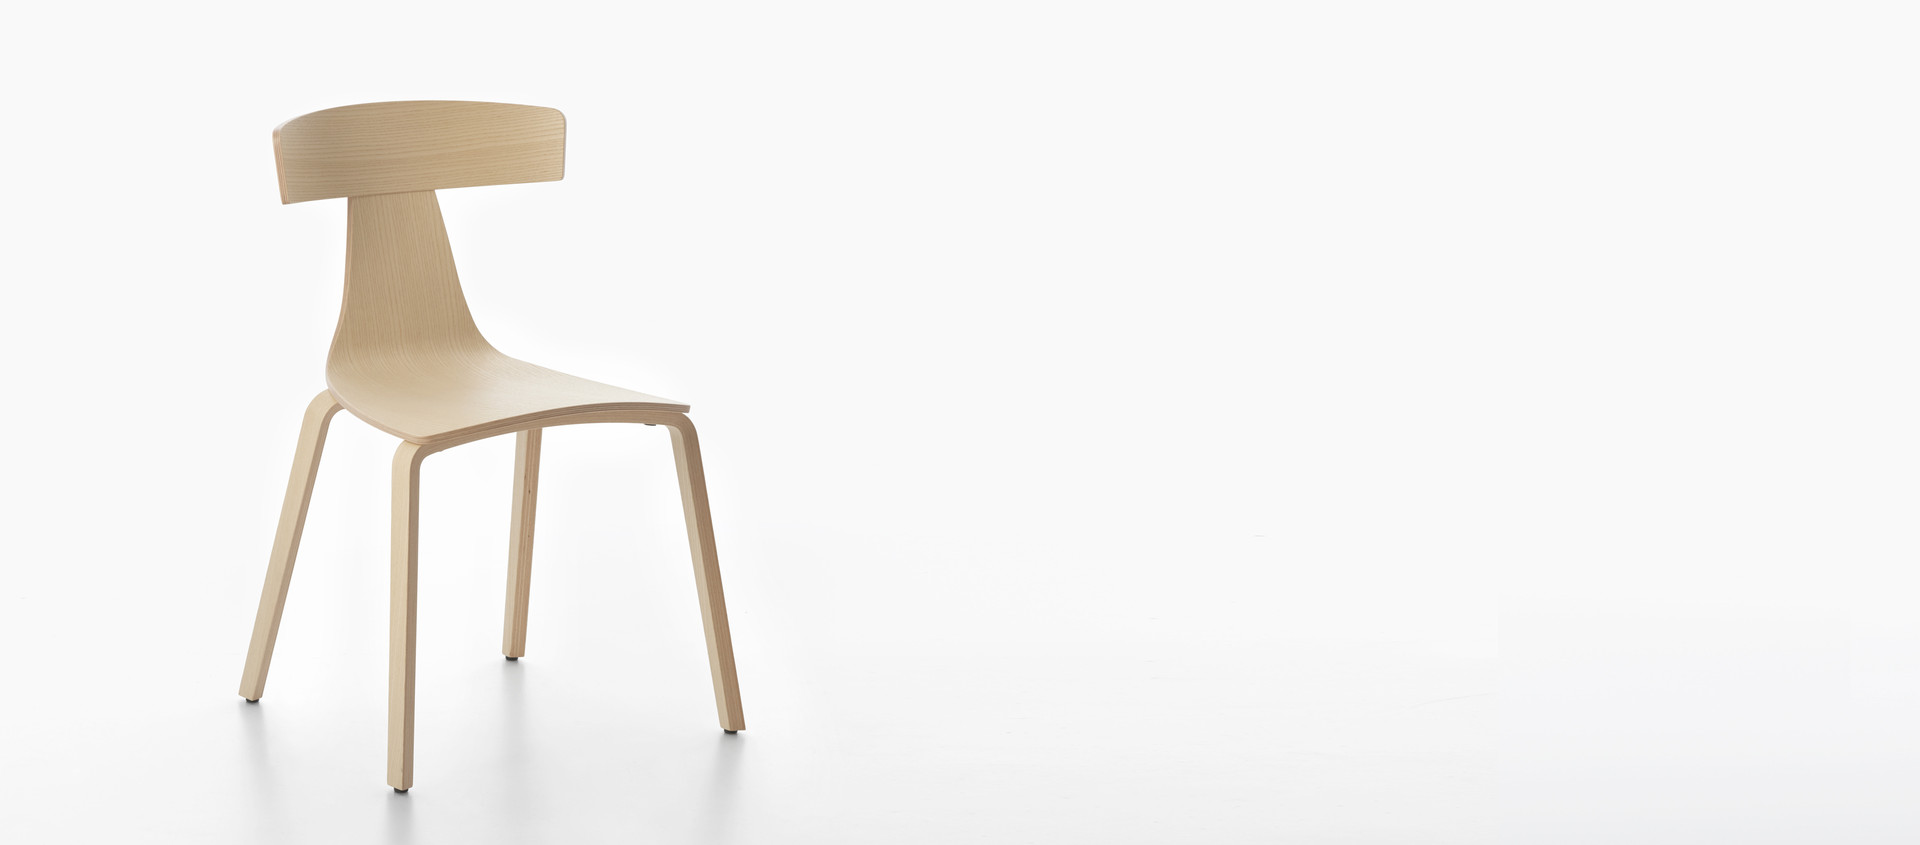 HERO - PLANK REMO wood chair